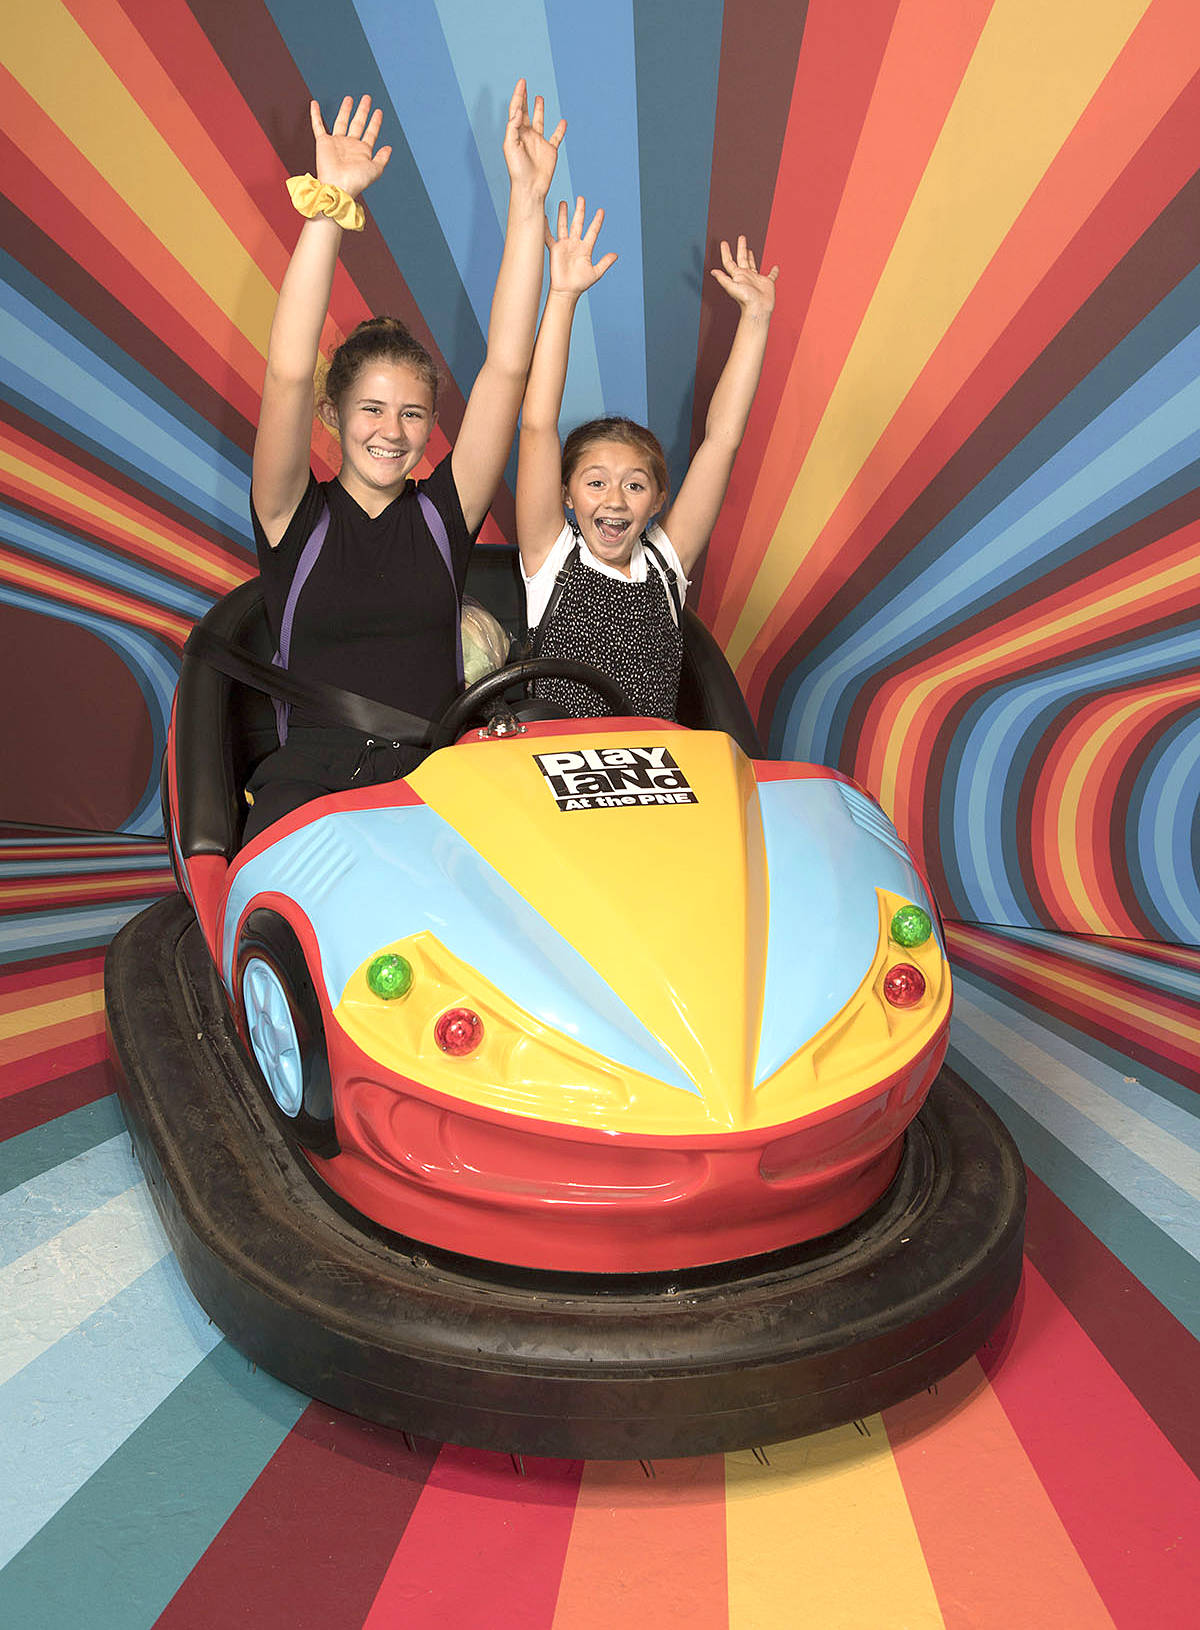 Josephine, 13, and Adrianna Wainwright, 11, braced for impact in a bumper car during their visit to the PNE Fair's Snap Happy exhibit. The massive pop-up pavilion is what social media dreams are made of, open from 11 a.m. to 11 p.m. daily. (PNE/Special to the Langley Advance Times)